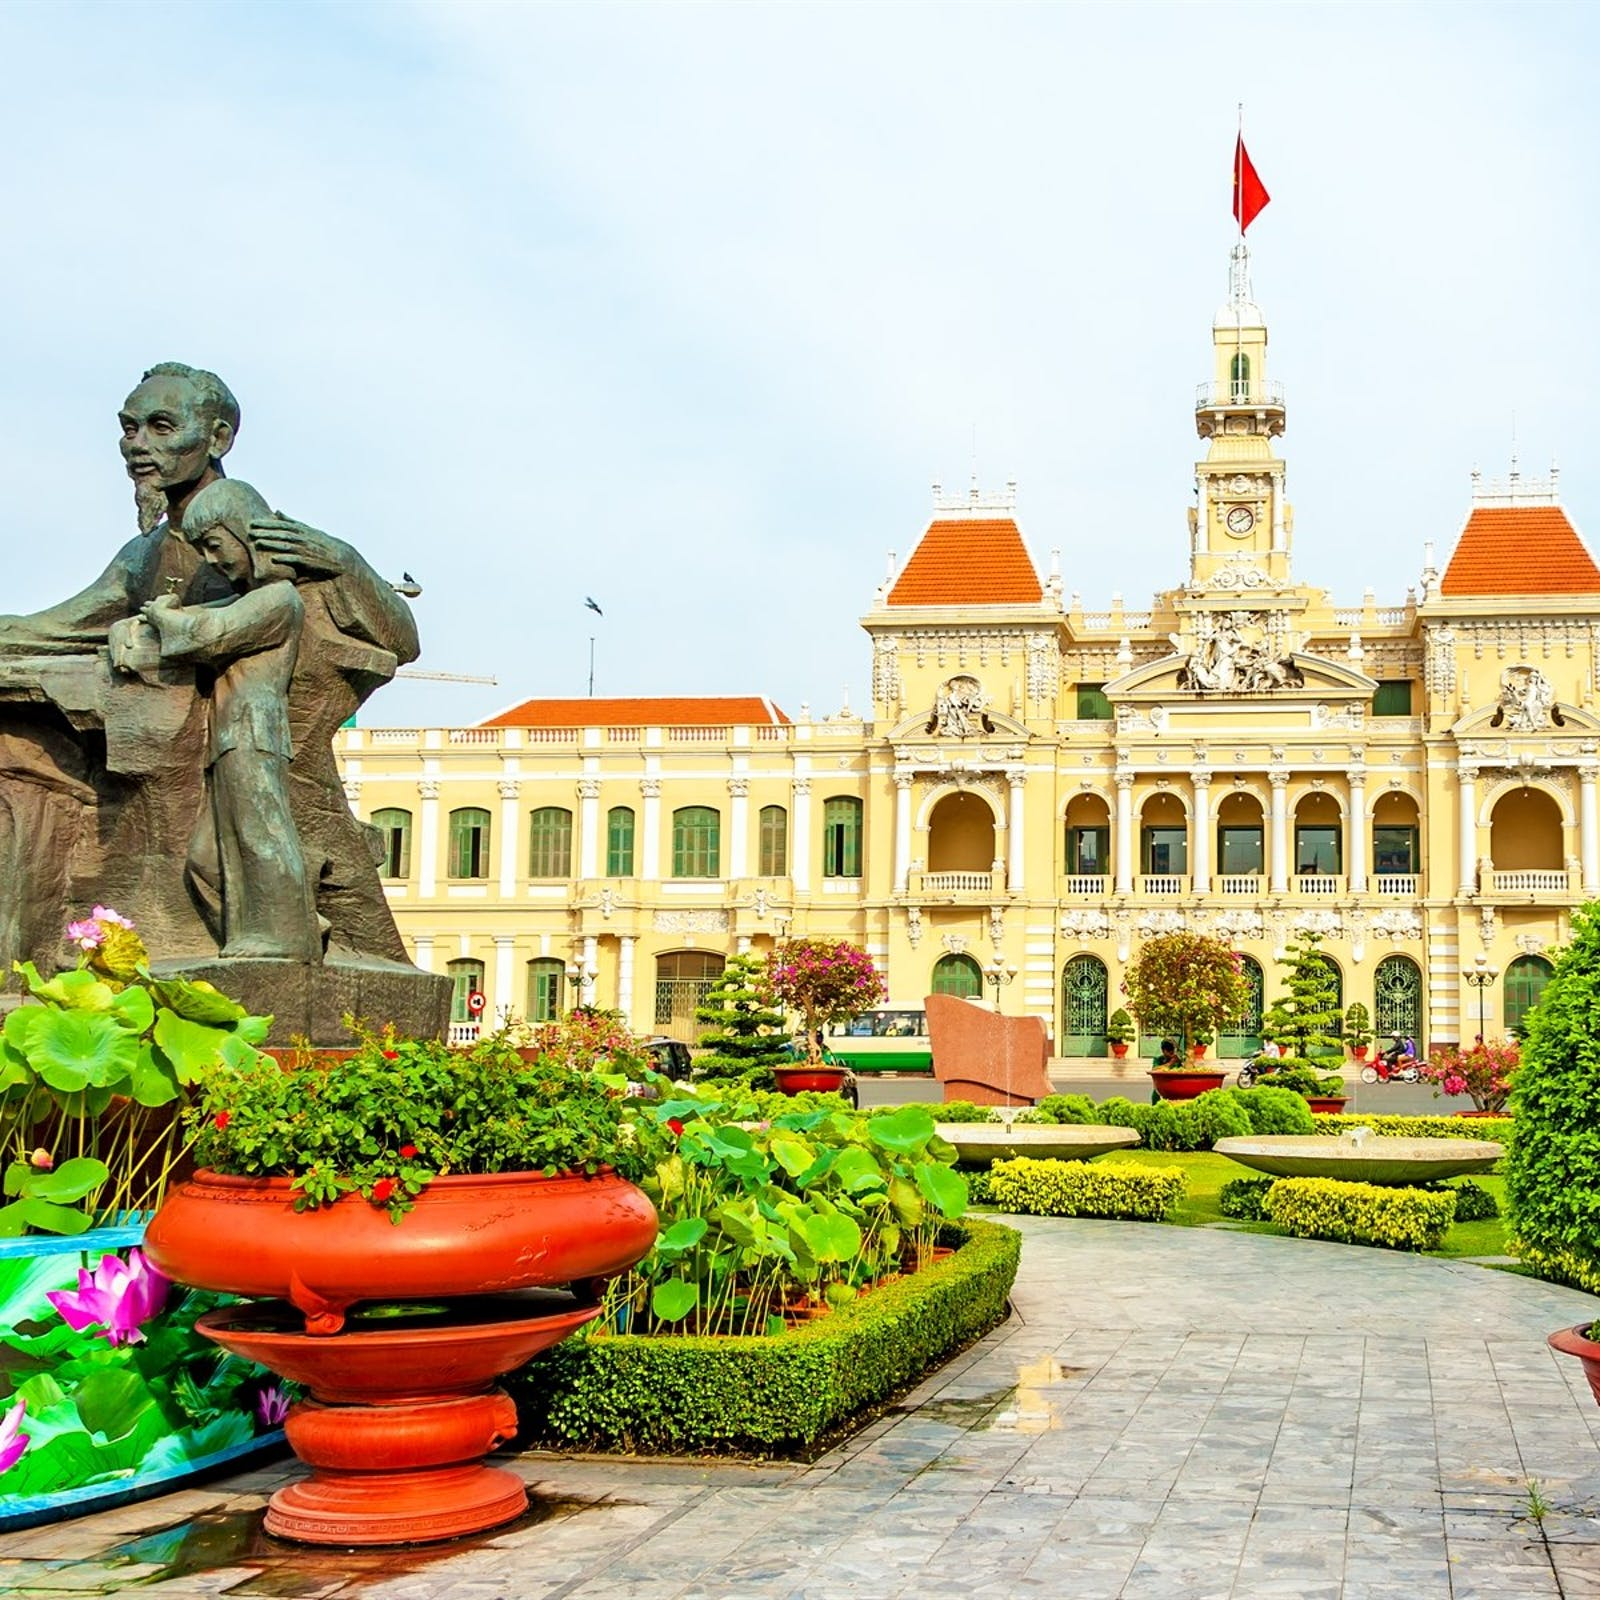 Hue to Ho Chi Minh City